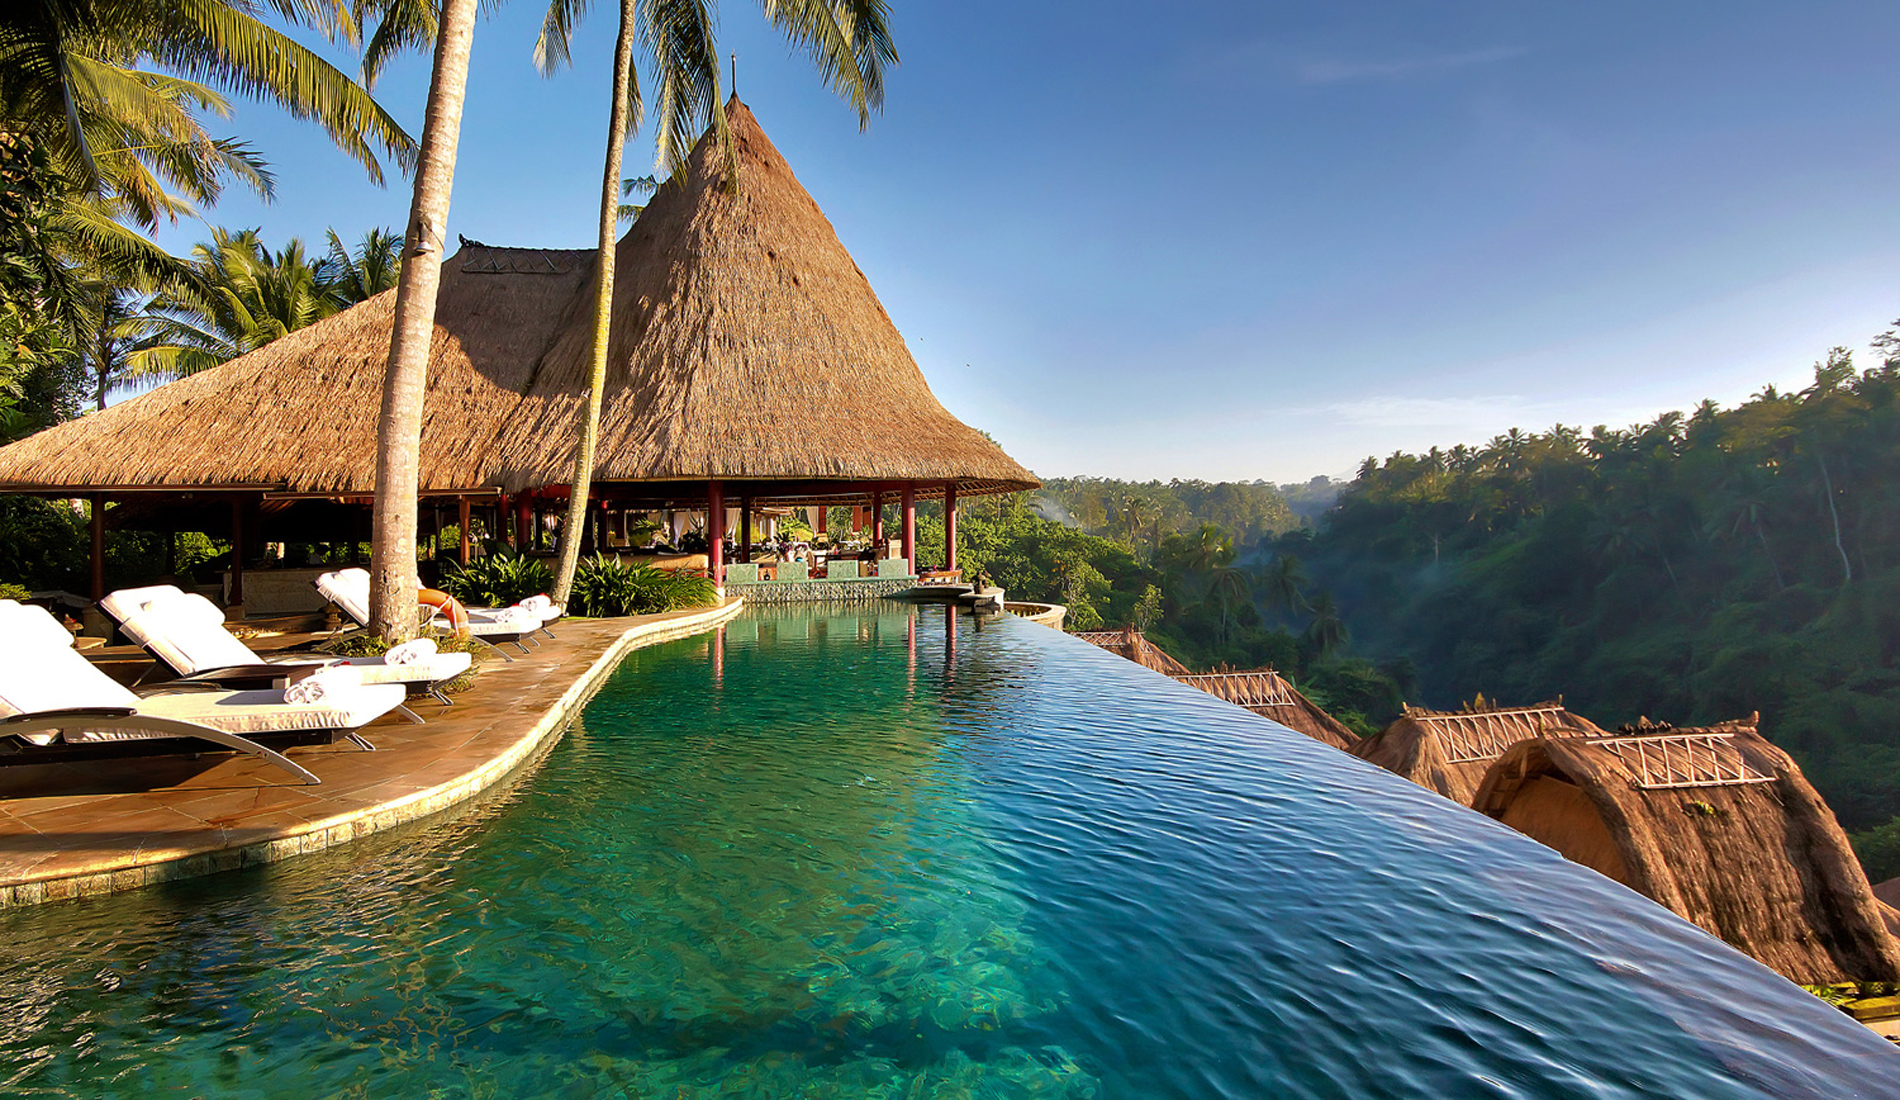 Private Villa Ubud - Bali Tours Activities